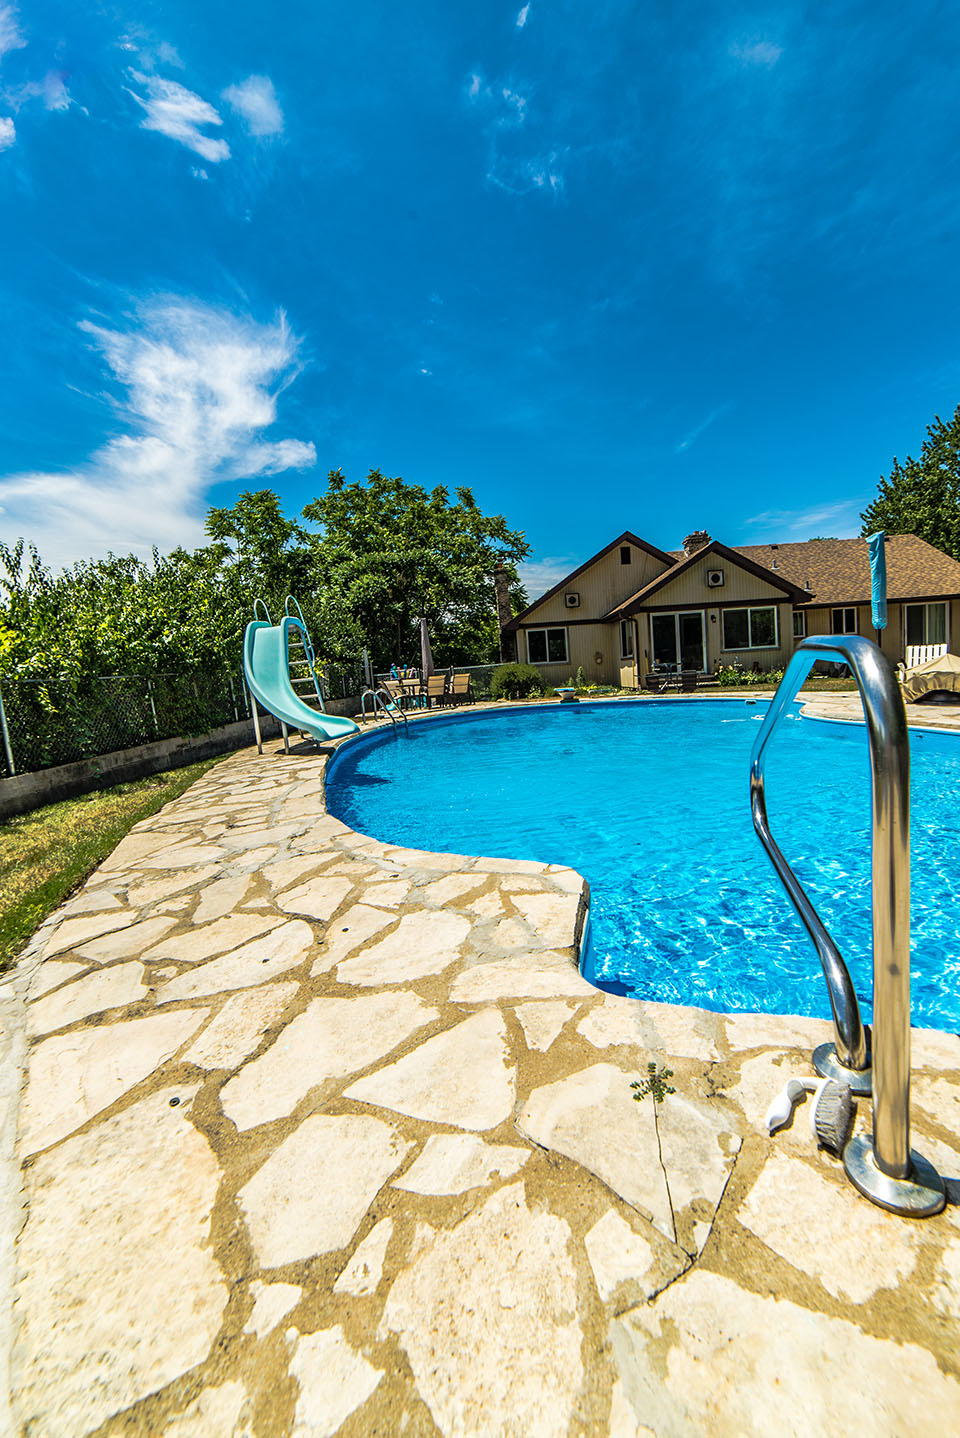 custom pool design and stone pavers